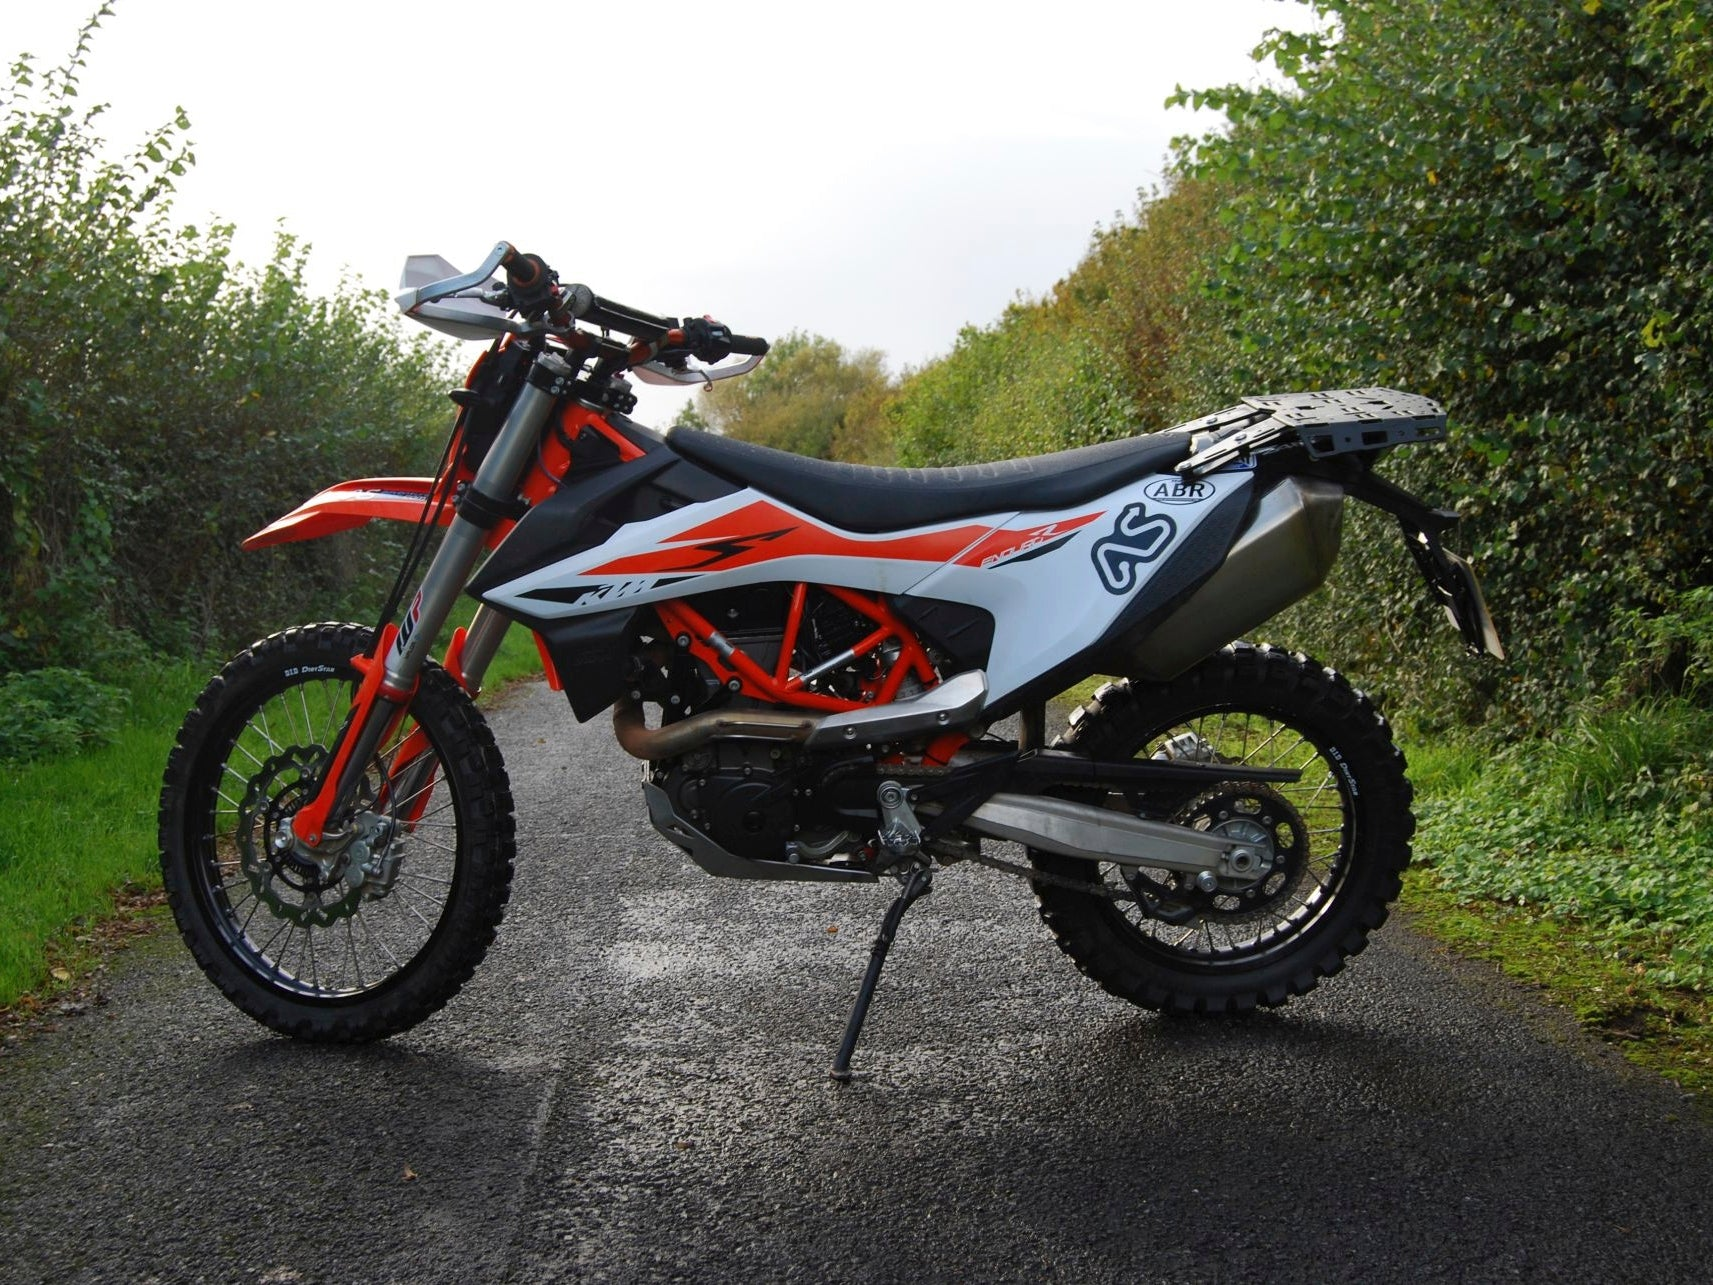 Perun moto rack on Adventure bike rider Magazine's 2019 KTM 690 Enduro R